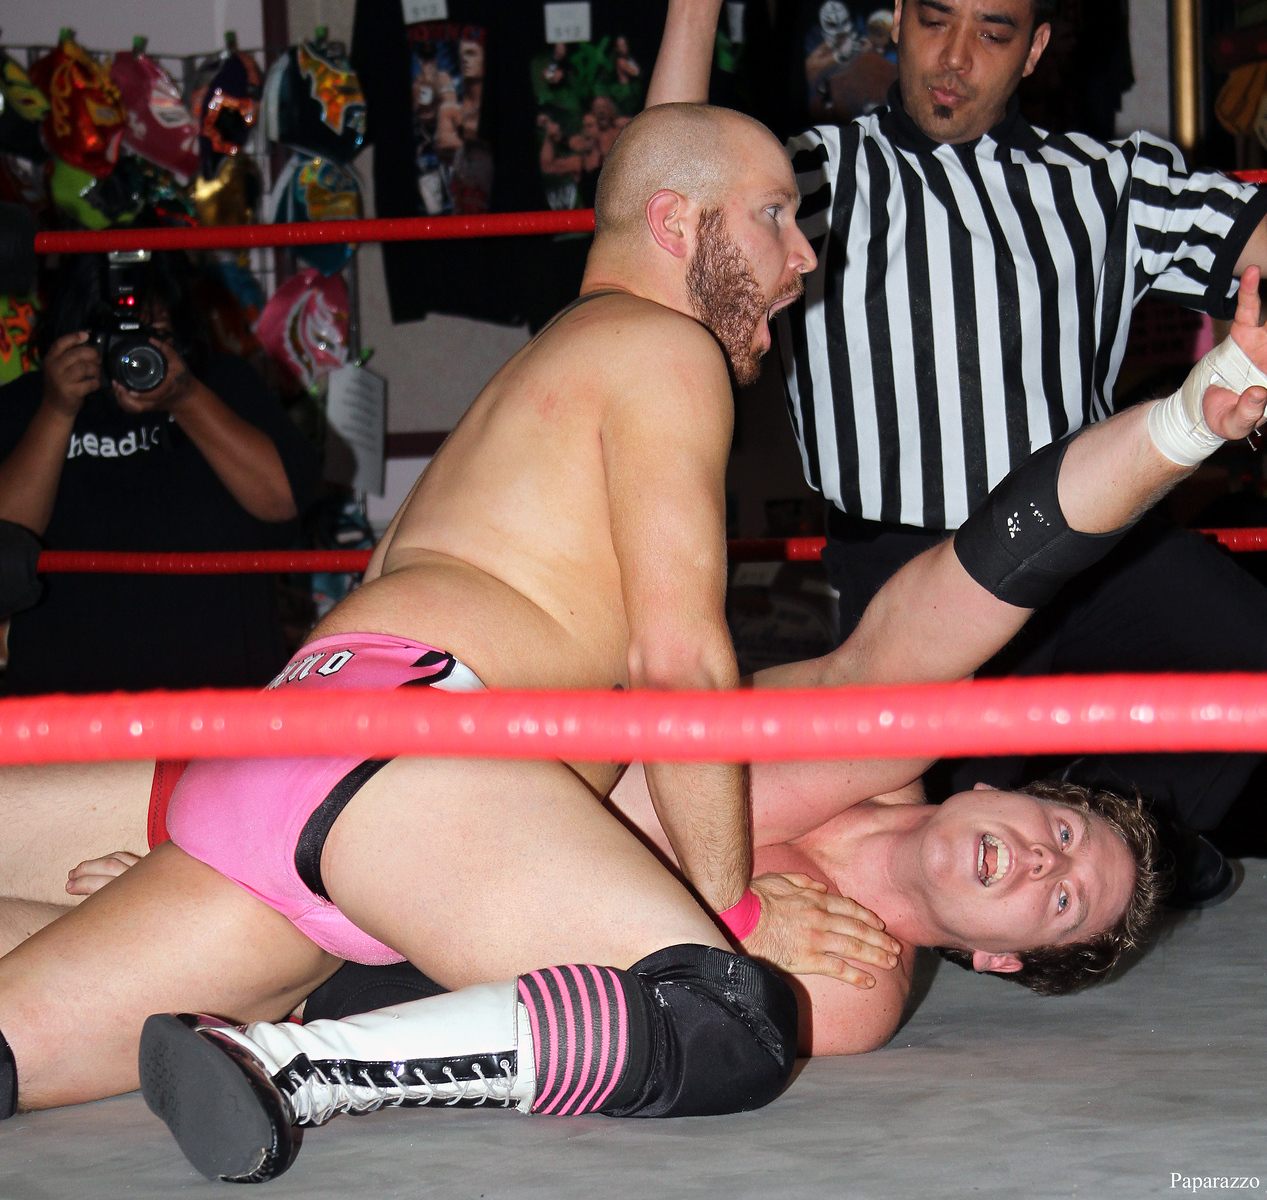 Buddy Romano can't believe that Andy McKenzie got a shoulder up before the three count at Lucky Pro Wrestling's Fall Frenzy show held on October 12, 2013 in Clinton, Massachusetts.